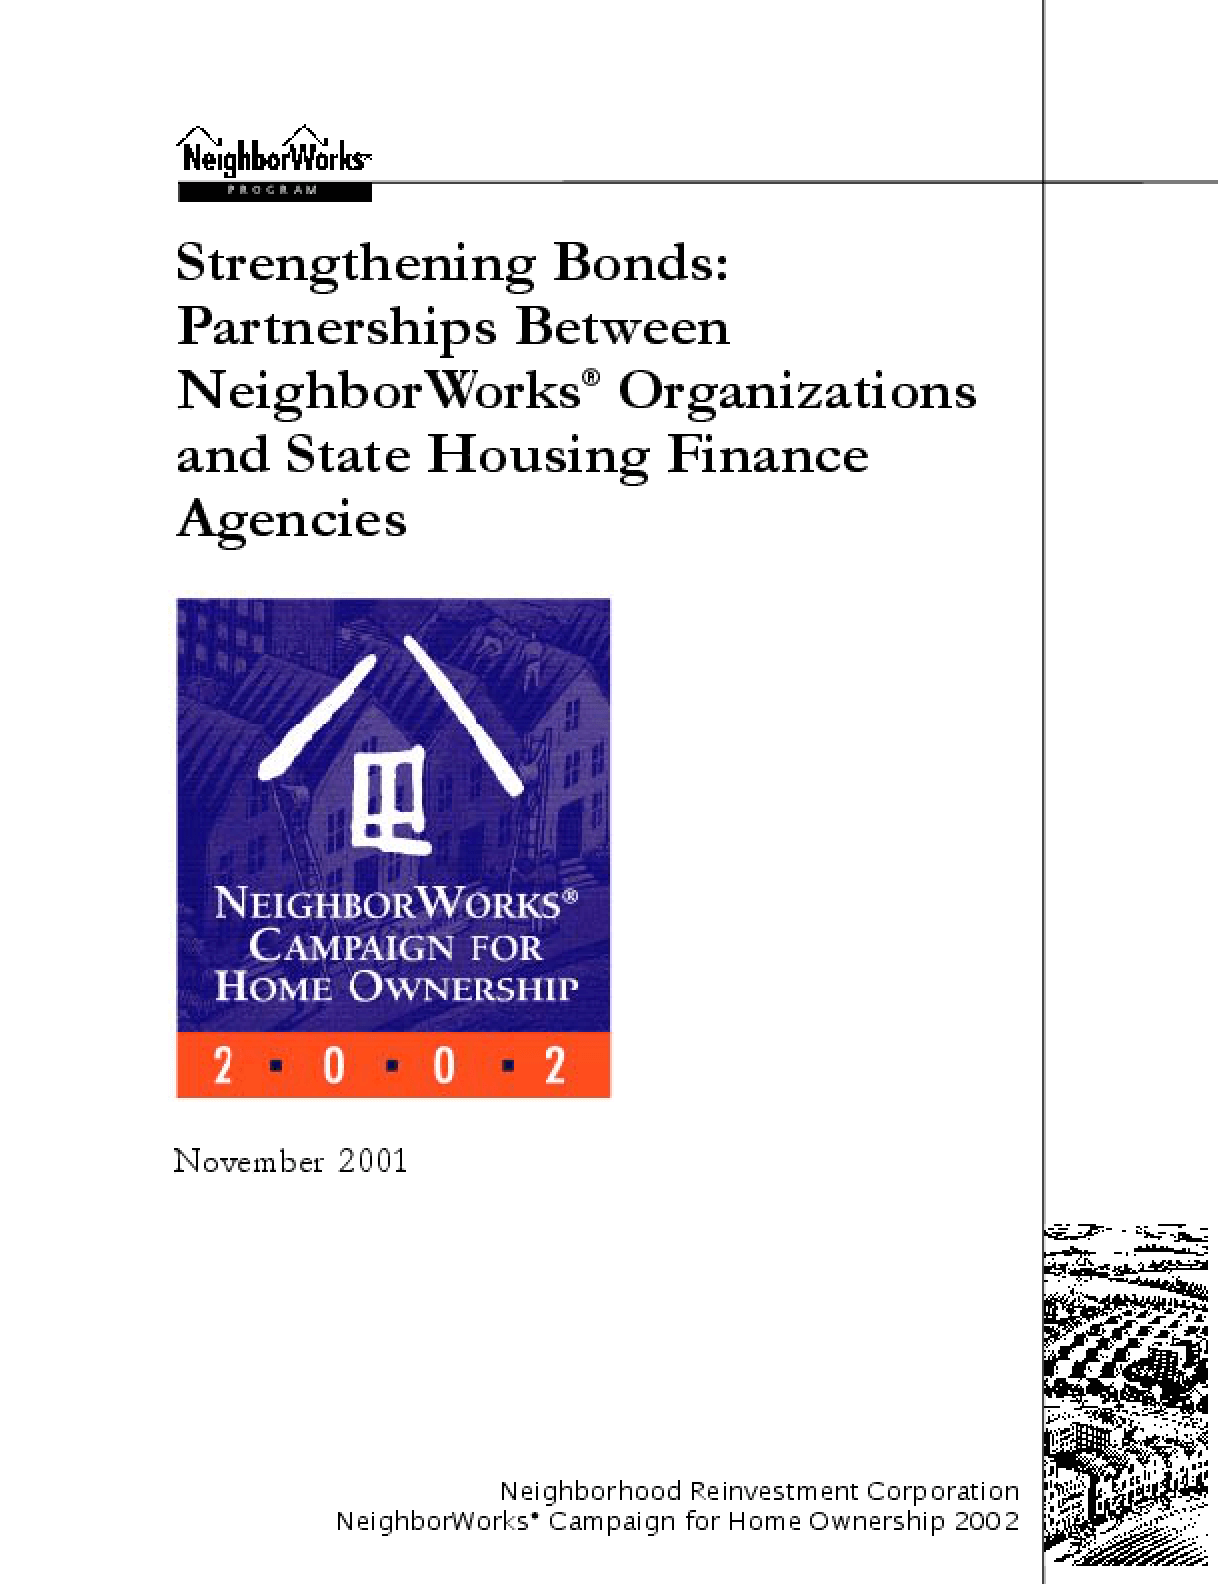 Strengthening Bonds: Partnerships Between NeighborWorks Organizations and State Housing Finance Agencies